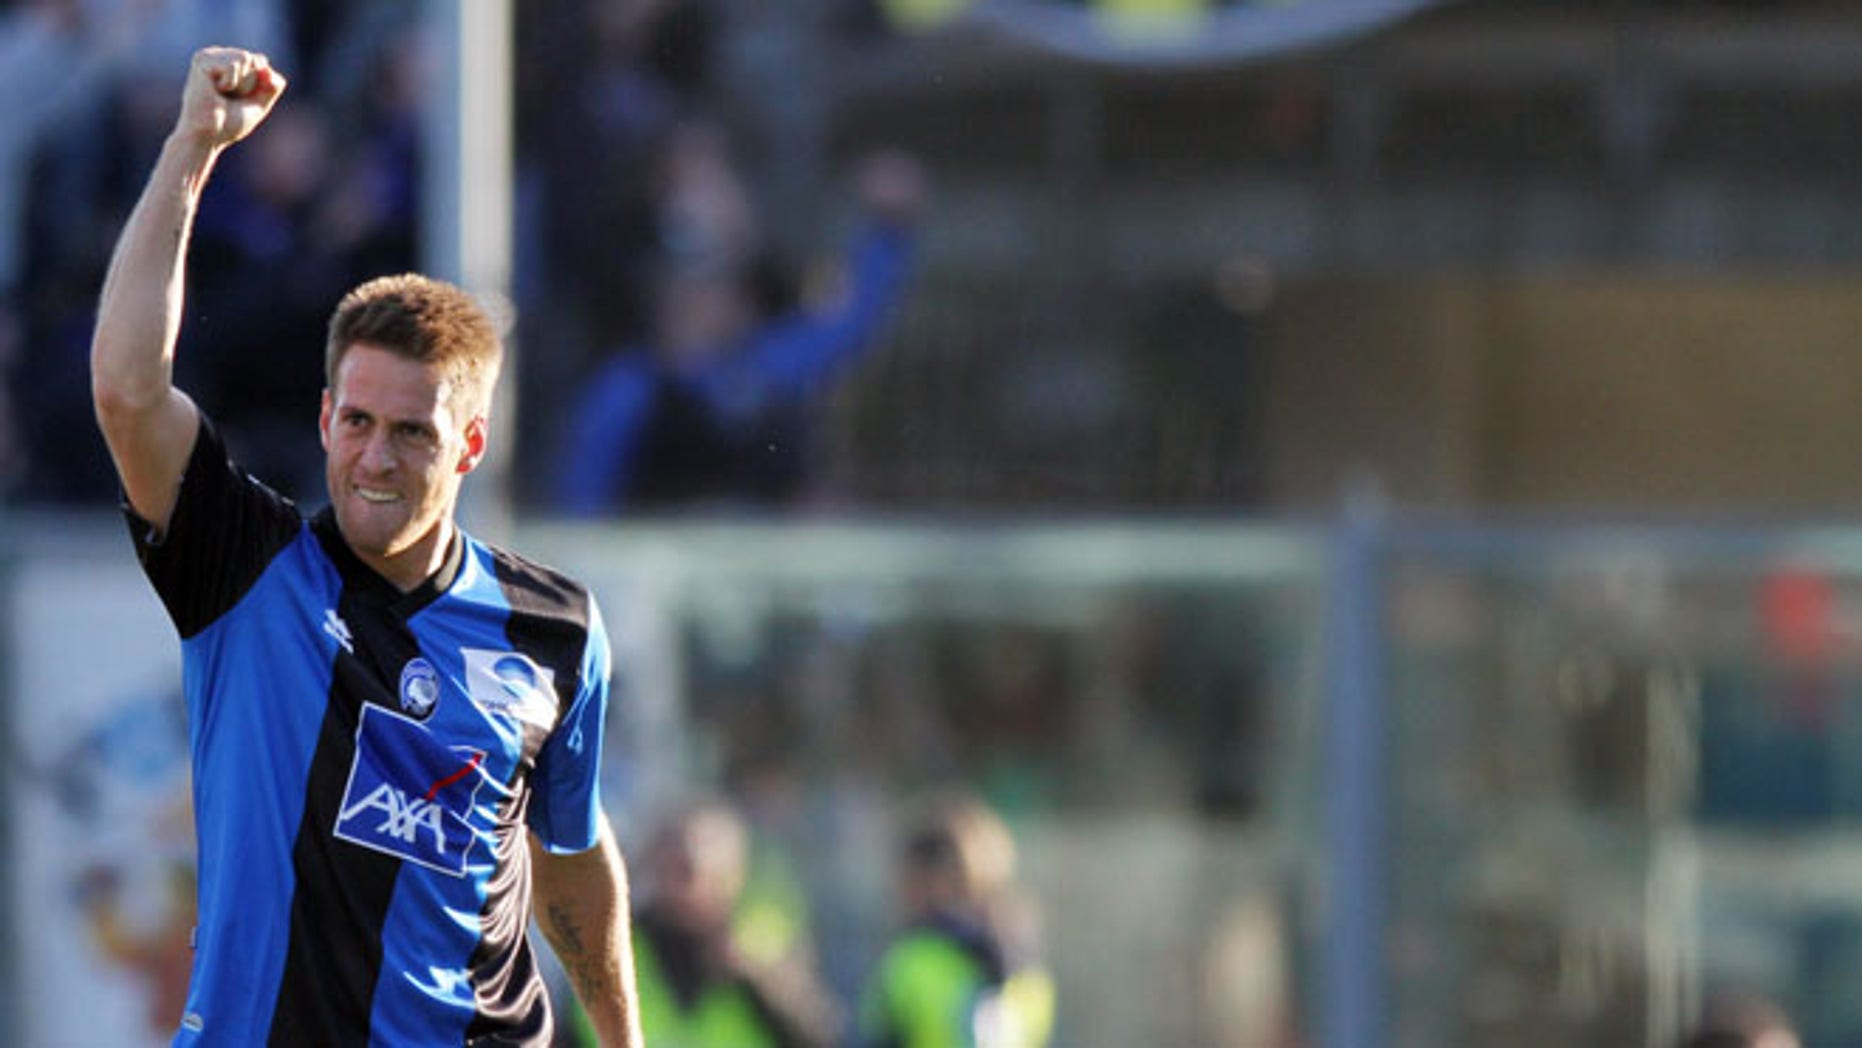 Atalanta's German Denis, of Argentina, reacts after scoring during a Serie A soccer match against AS Roma in Bergamo, Italy, Sunday, Feb. 26, 2012. (AP Photo/Felice Calabro')